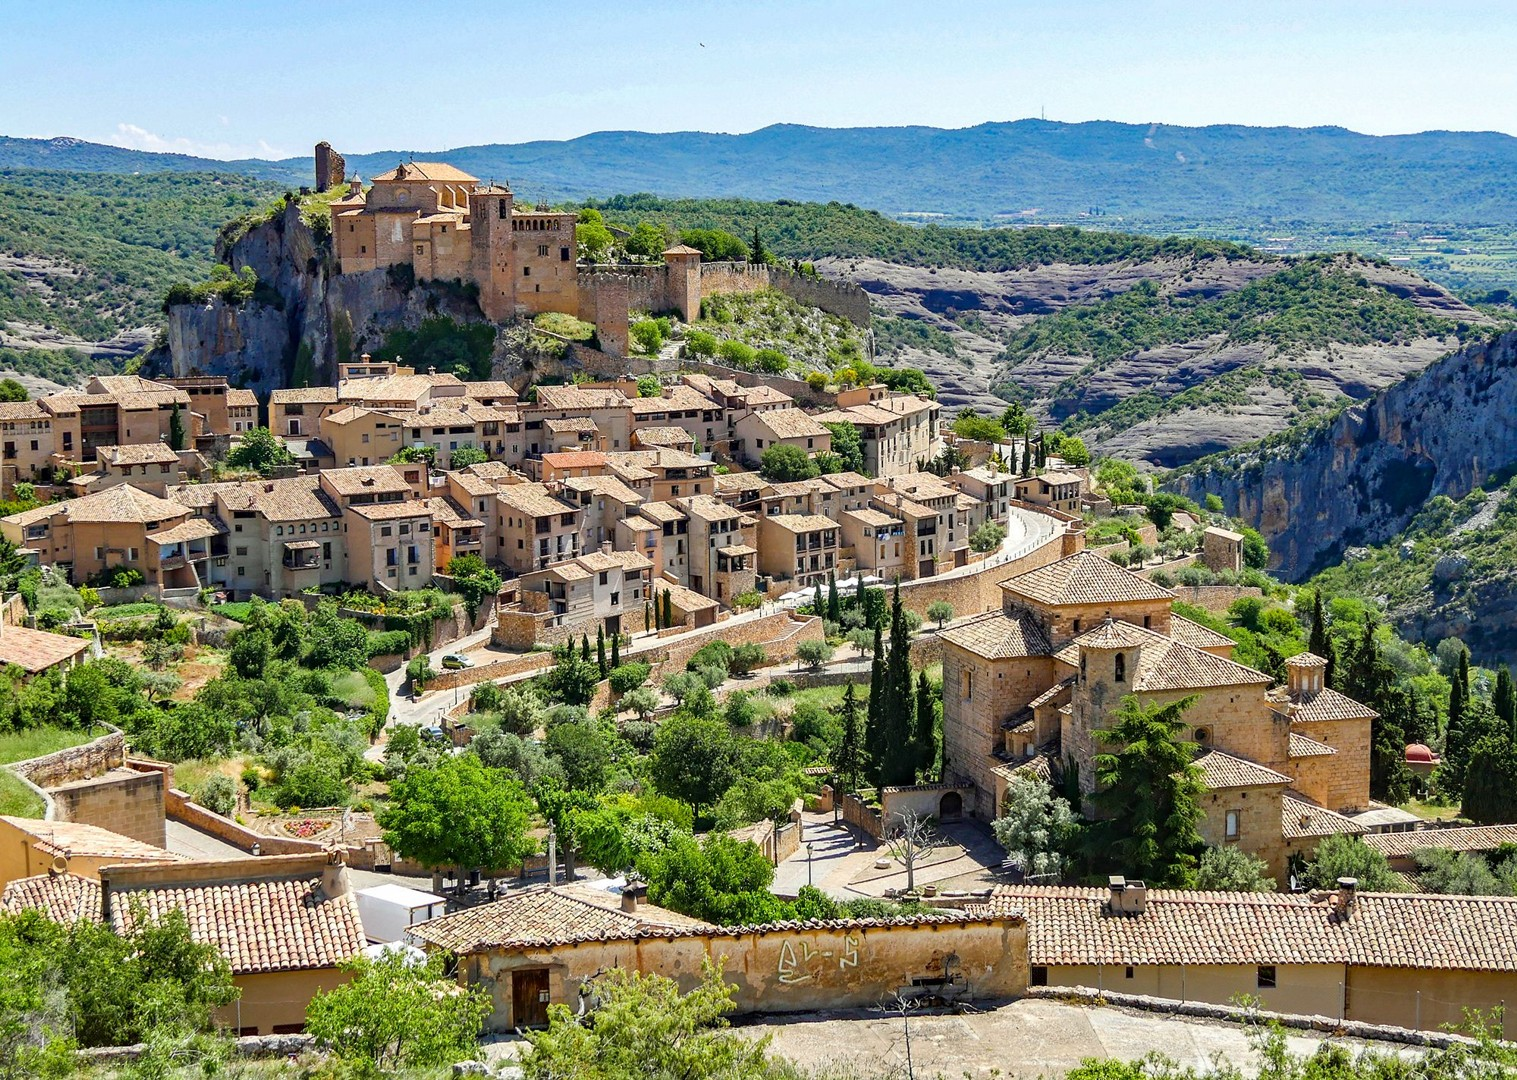 spanish-villages-in-the-north-guided-cycling-holiday-with-saddle-skedaddle.jpg - Northern Spain - Bilbao to Barcelona - Guided Road Cycling Holiday - Road Cycling